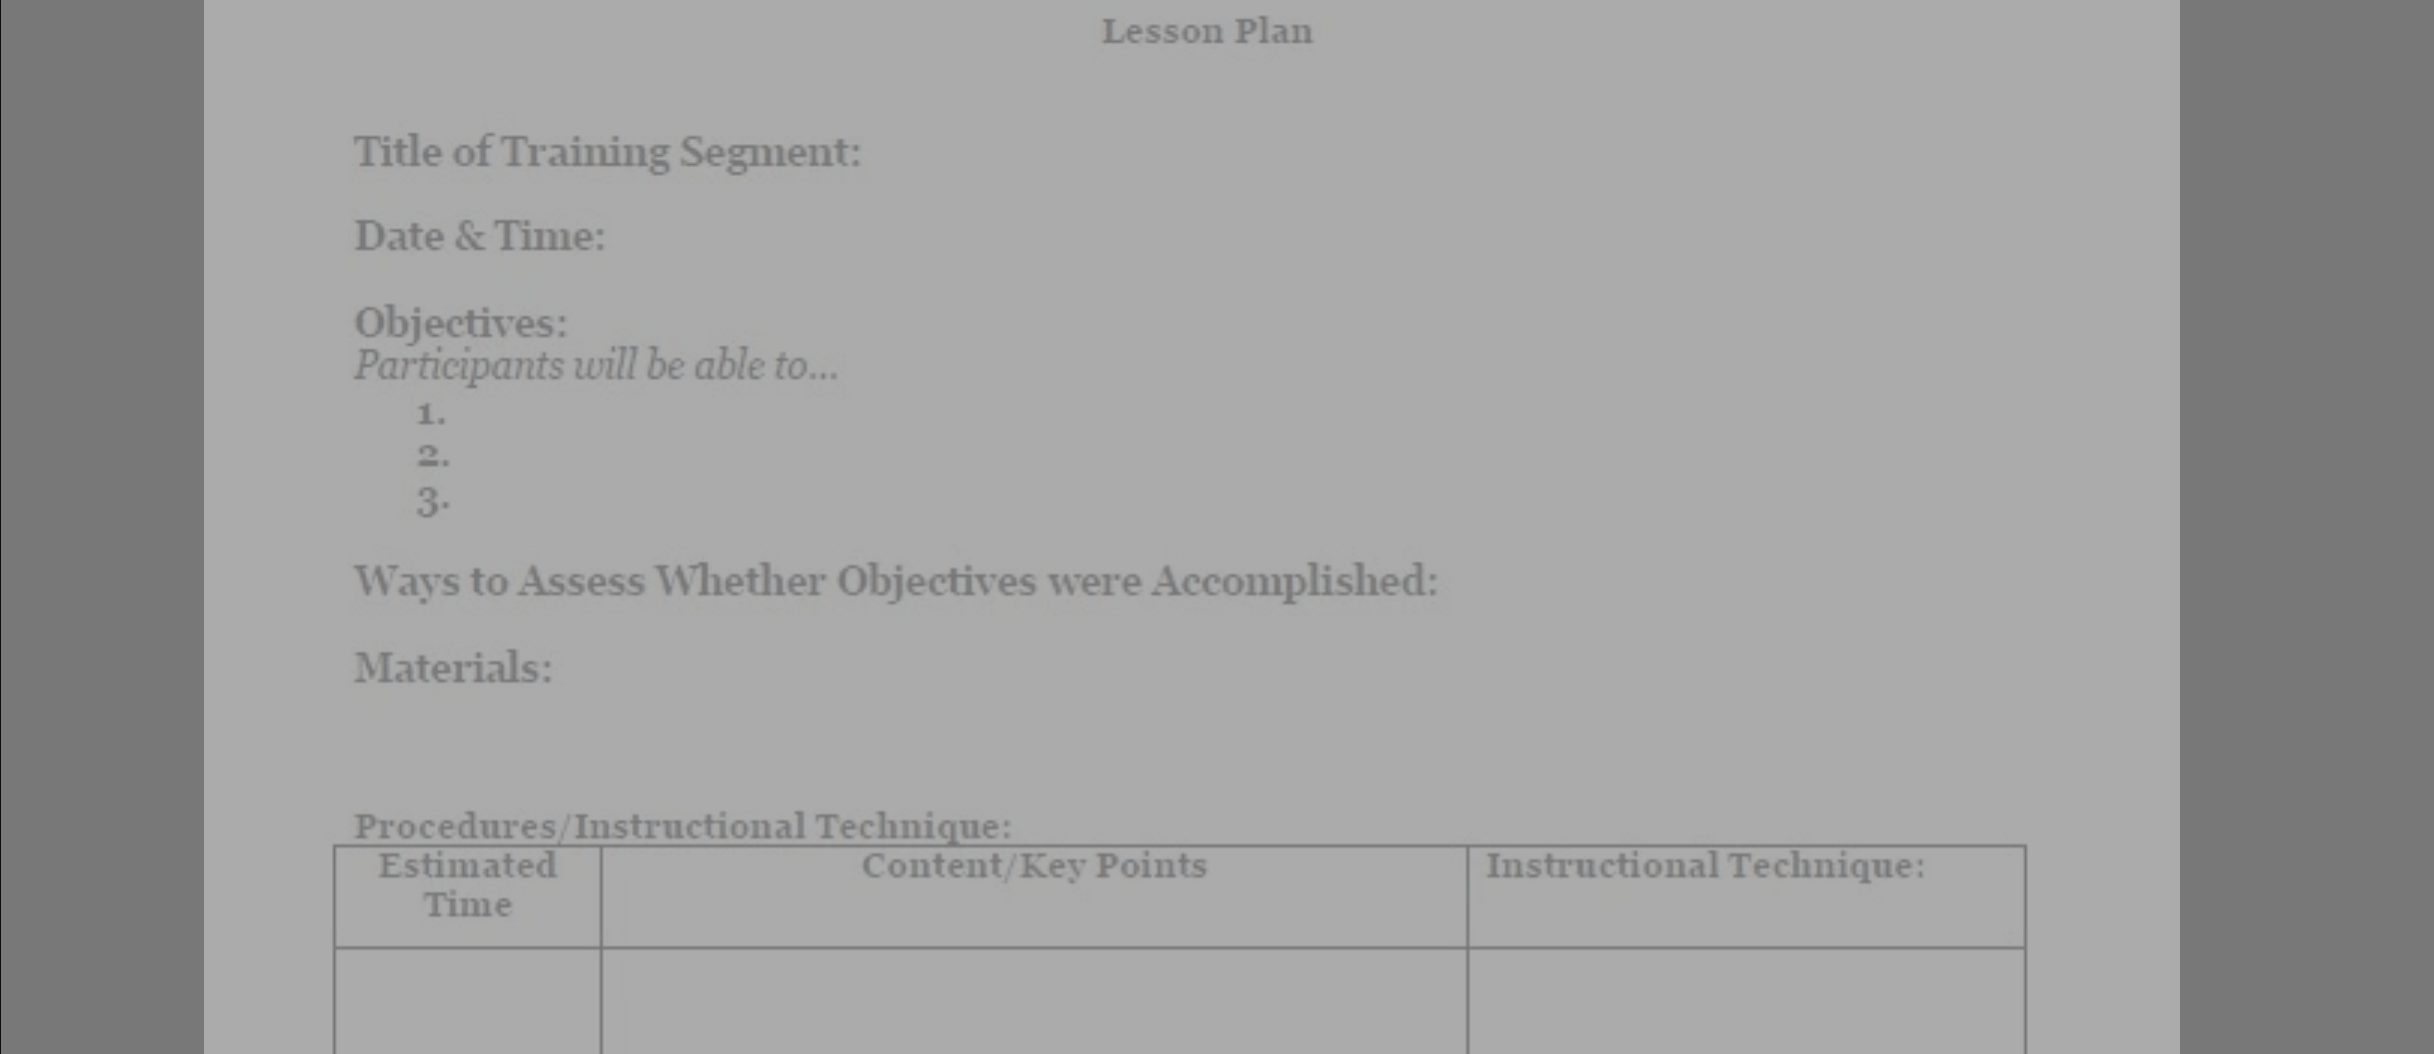 Using a Lesson Plan Outline to Organize Your Presentation